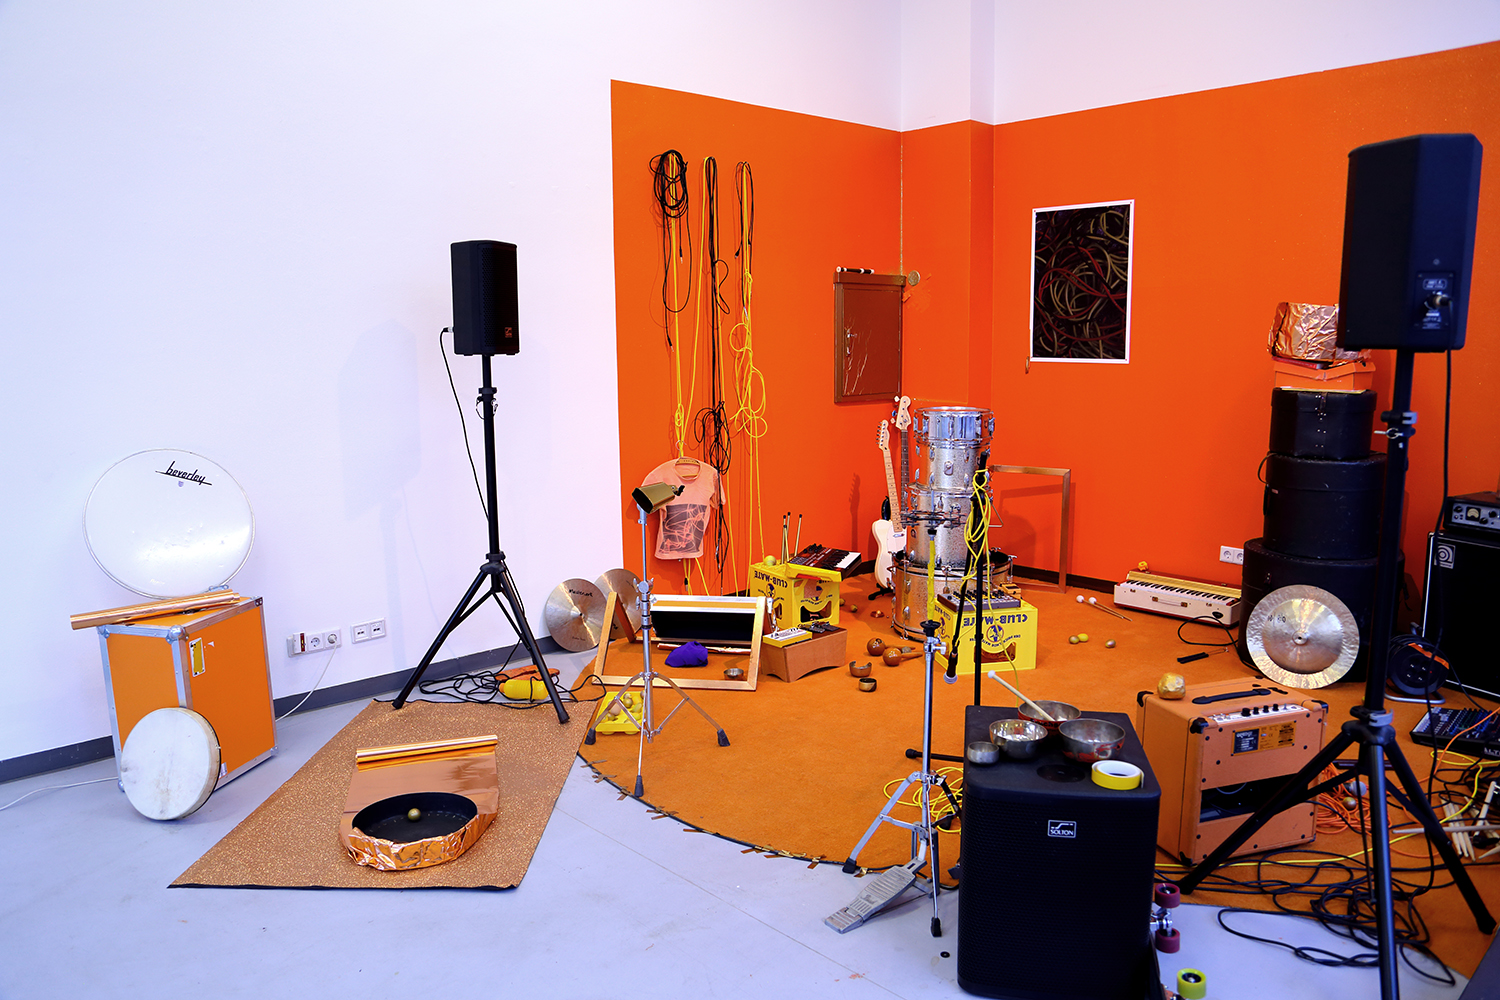 Mixed media     (installation view)  Galerie Wedding Raum für zeitgenössische Kunst , Berlin   Practice Room  is a spatial installation that is open to be used by visitors, guests/bands and the »flatmates«. They can convene and try out and play (with) altered instruments. Lucinda Dayhew invites us to collective rehearsals. A practice room is usually secluded, it is not a public space. Songs and melodies are not final, the musicians have no audience yet. Dayhew allows us to experience the processes of collective music making, the harmonies and disharmonies from inside the rehearsal space – accessible to the »flatmates«, visitors and people passing by. Over the course of the exhibition she invites different musicians to rehearse in her Practice Room. These rehearsals take place at different times during the day and night, they are visible and audible from the outside, but they are not public concerts. At the opening Dayhew's Band Luci Lippard will, however, rehearse six versions of  Still Life II  in public.  Text: Kathrin Pohlmann & Julia Zieger - curators of  Vacancies!  as part of  Post Otherness Wedding  - a series of exhibitions curated by Solvej Helweg Ovesen &Bonaventure Soh Bejeng Ndikung at Galerie Wedding